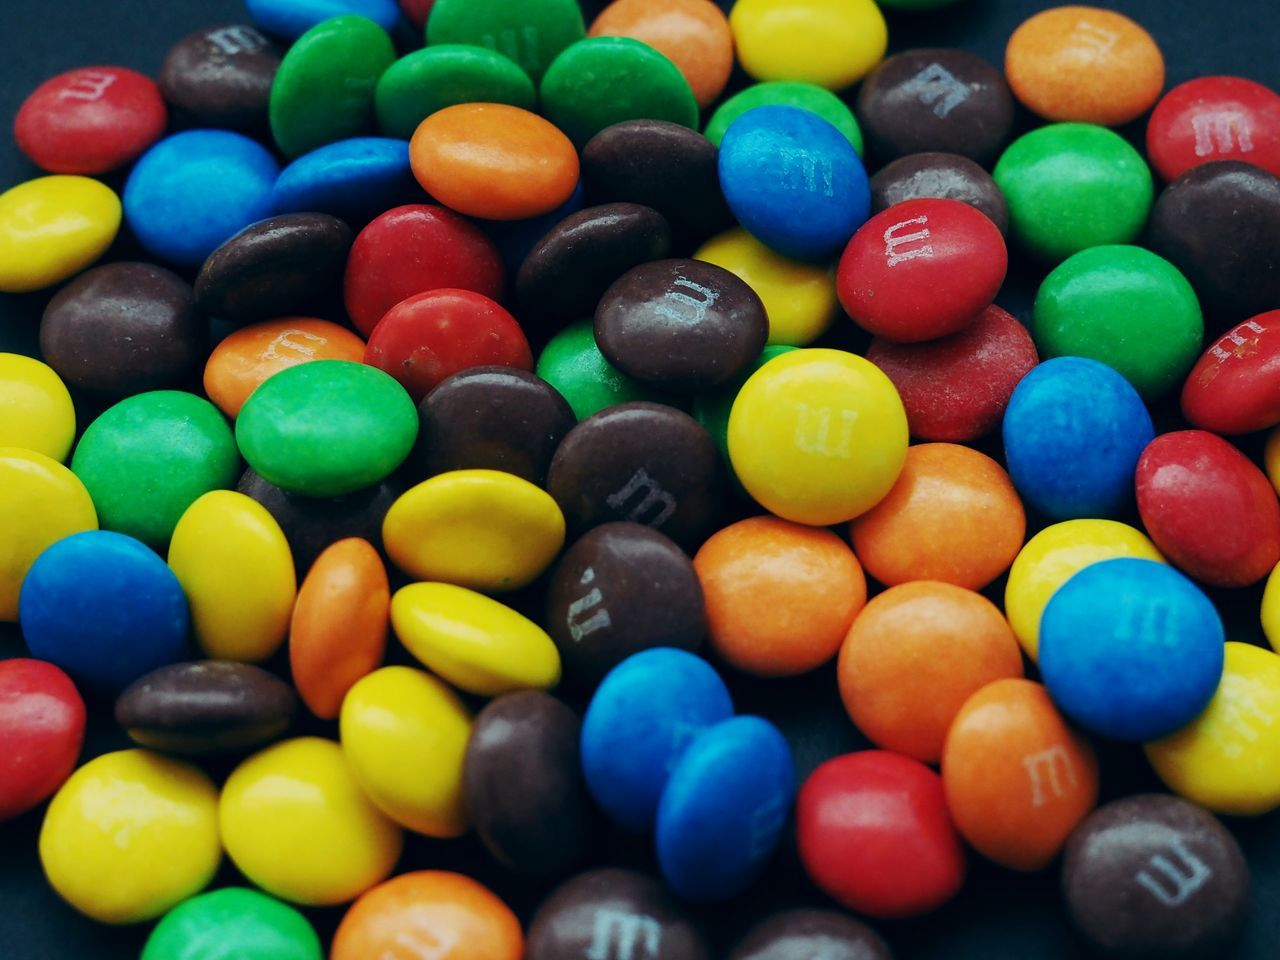 multi colored, colorful, still life, sweet food, large group of objects, indulgence, temptation, variation, choice, indoors, full frame, no people, unhealthy eating, close-up, backgrounds, dessert, food, day